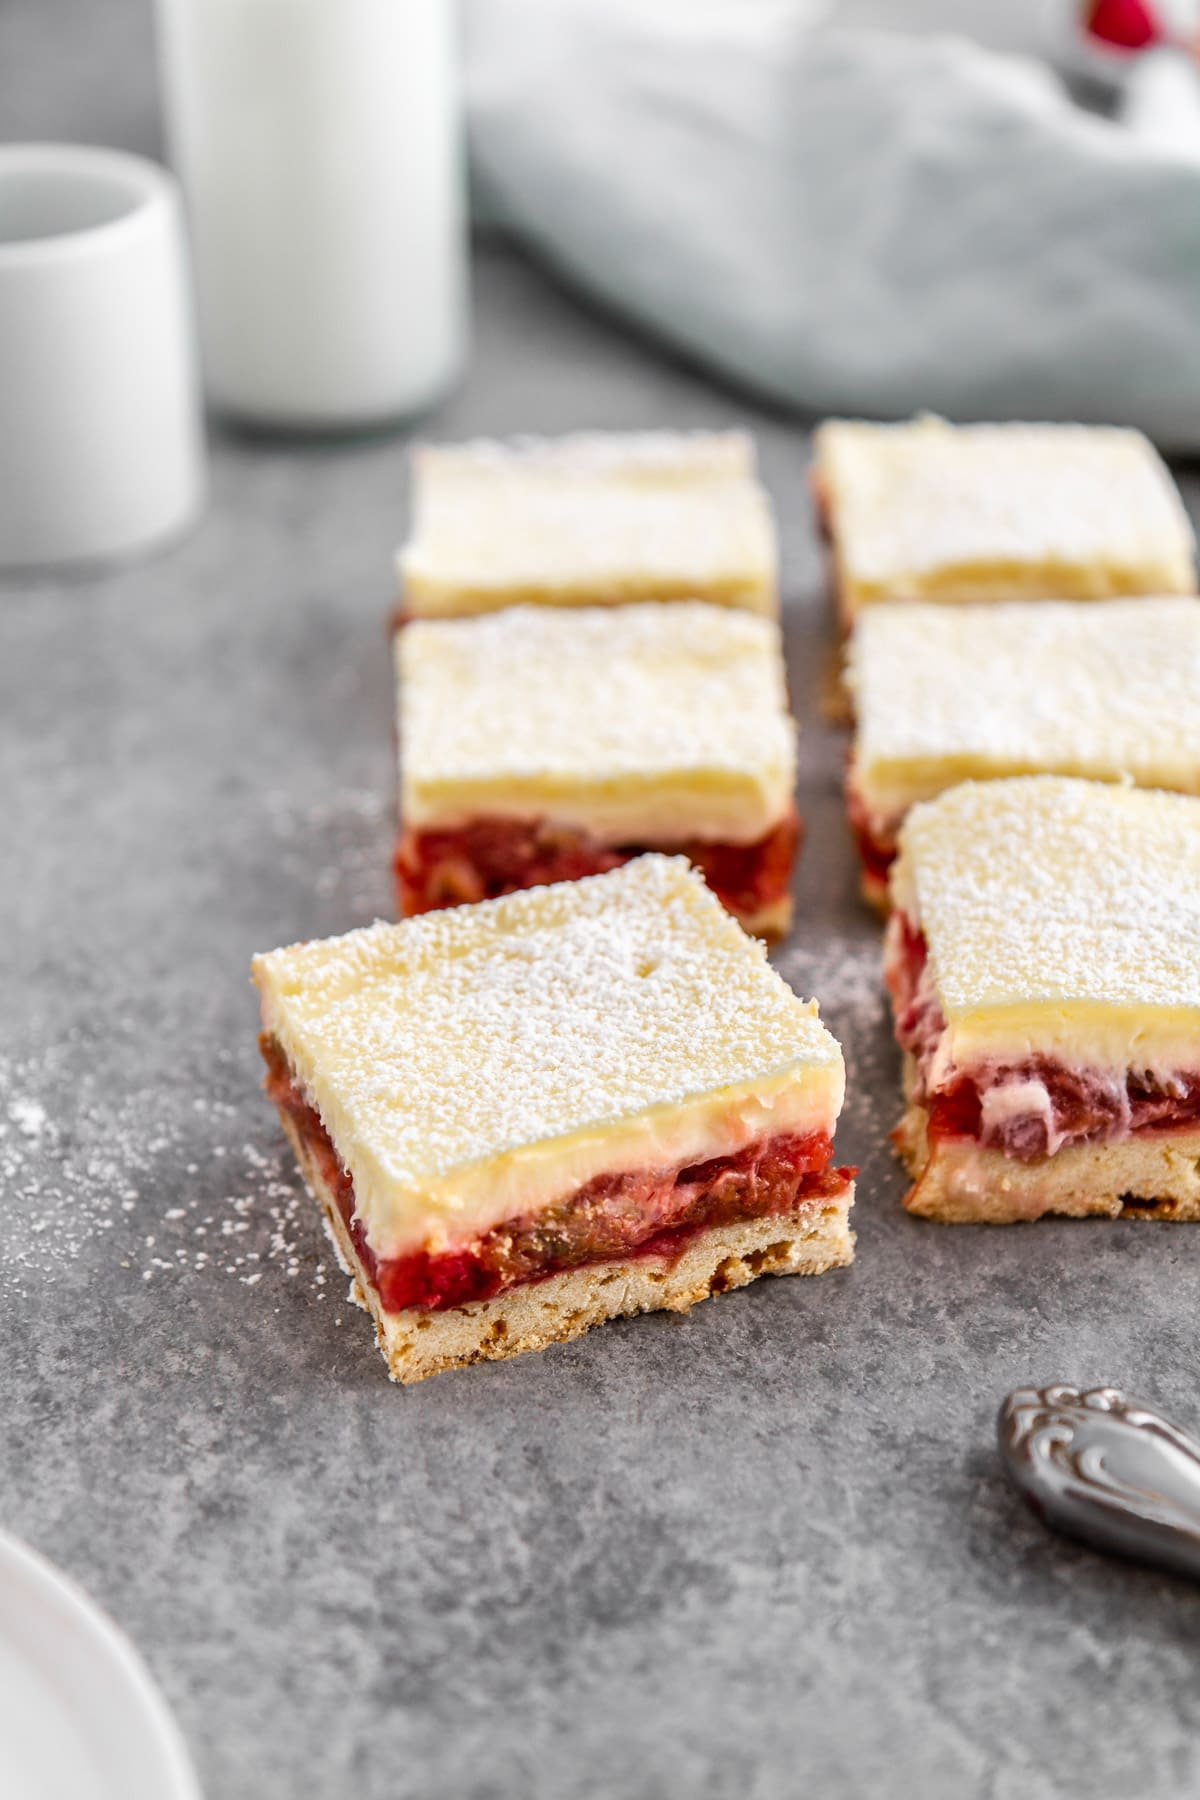 strawberry rhubarb cheesecake bars on a surface